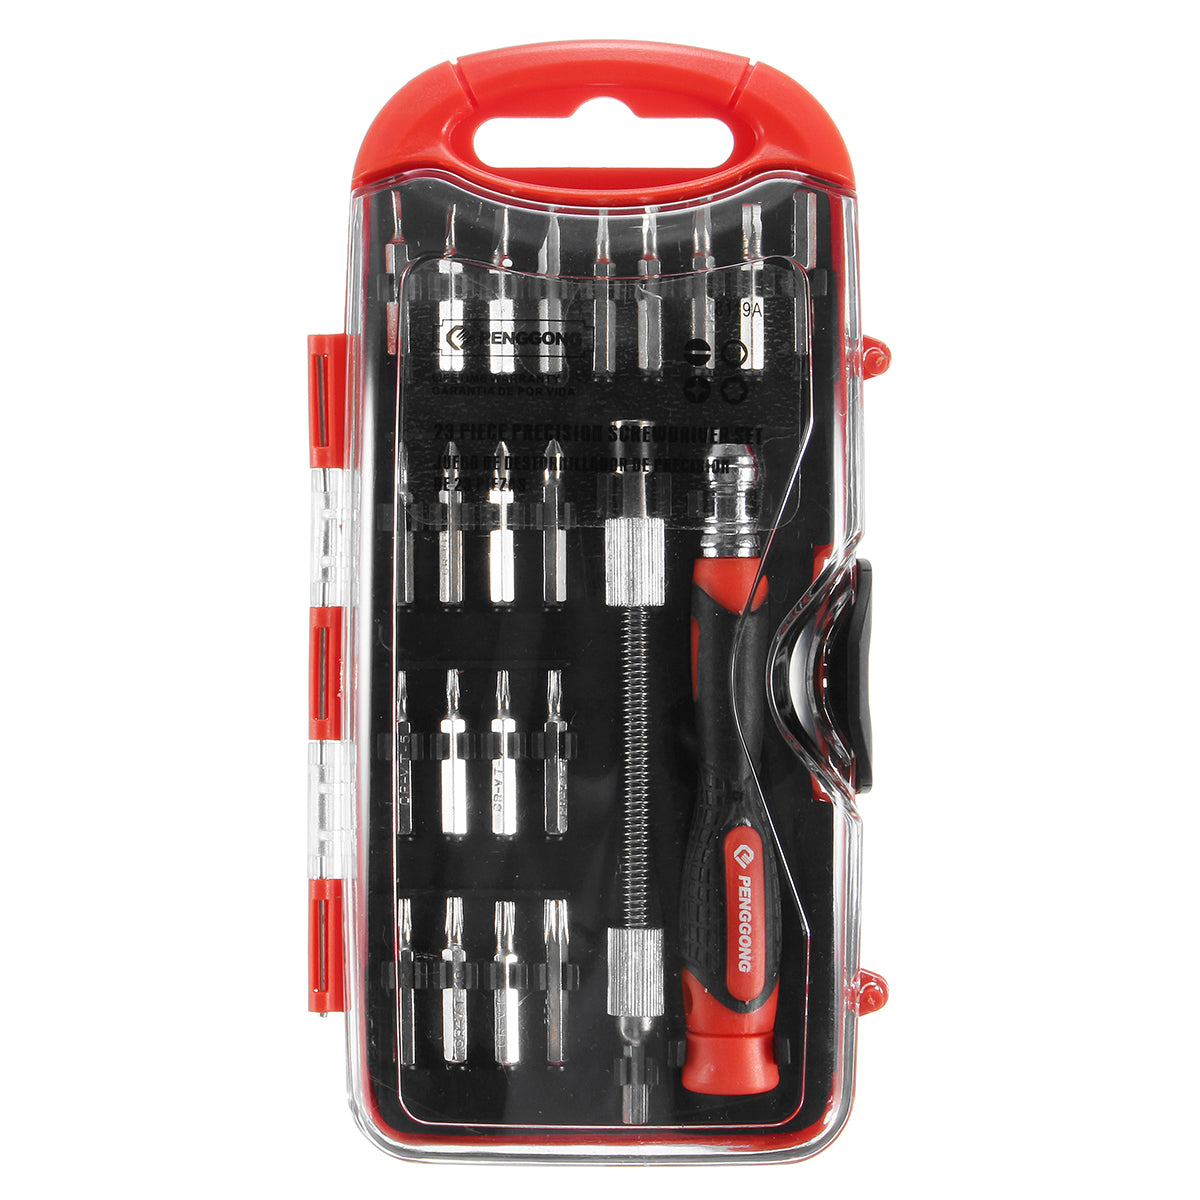 Screwdriver 8119A 23pcs Multifunction Telescopic Socket Screwdriver Set Screwdriver Bits With Box